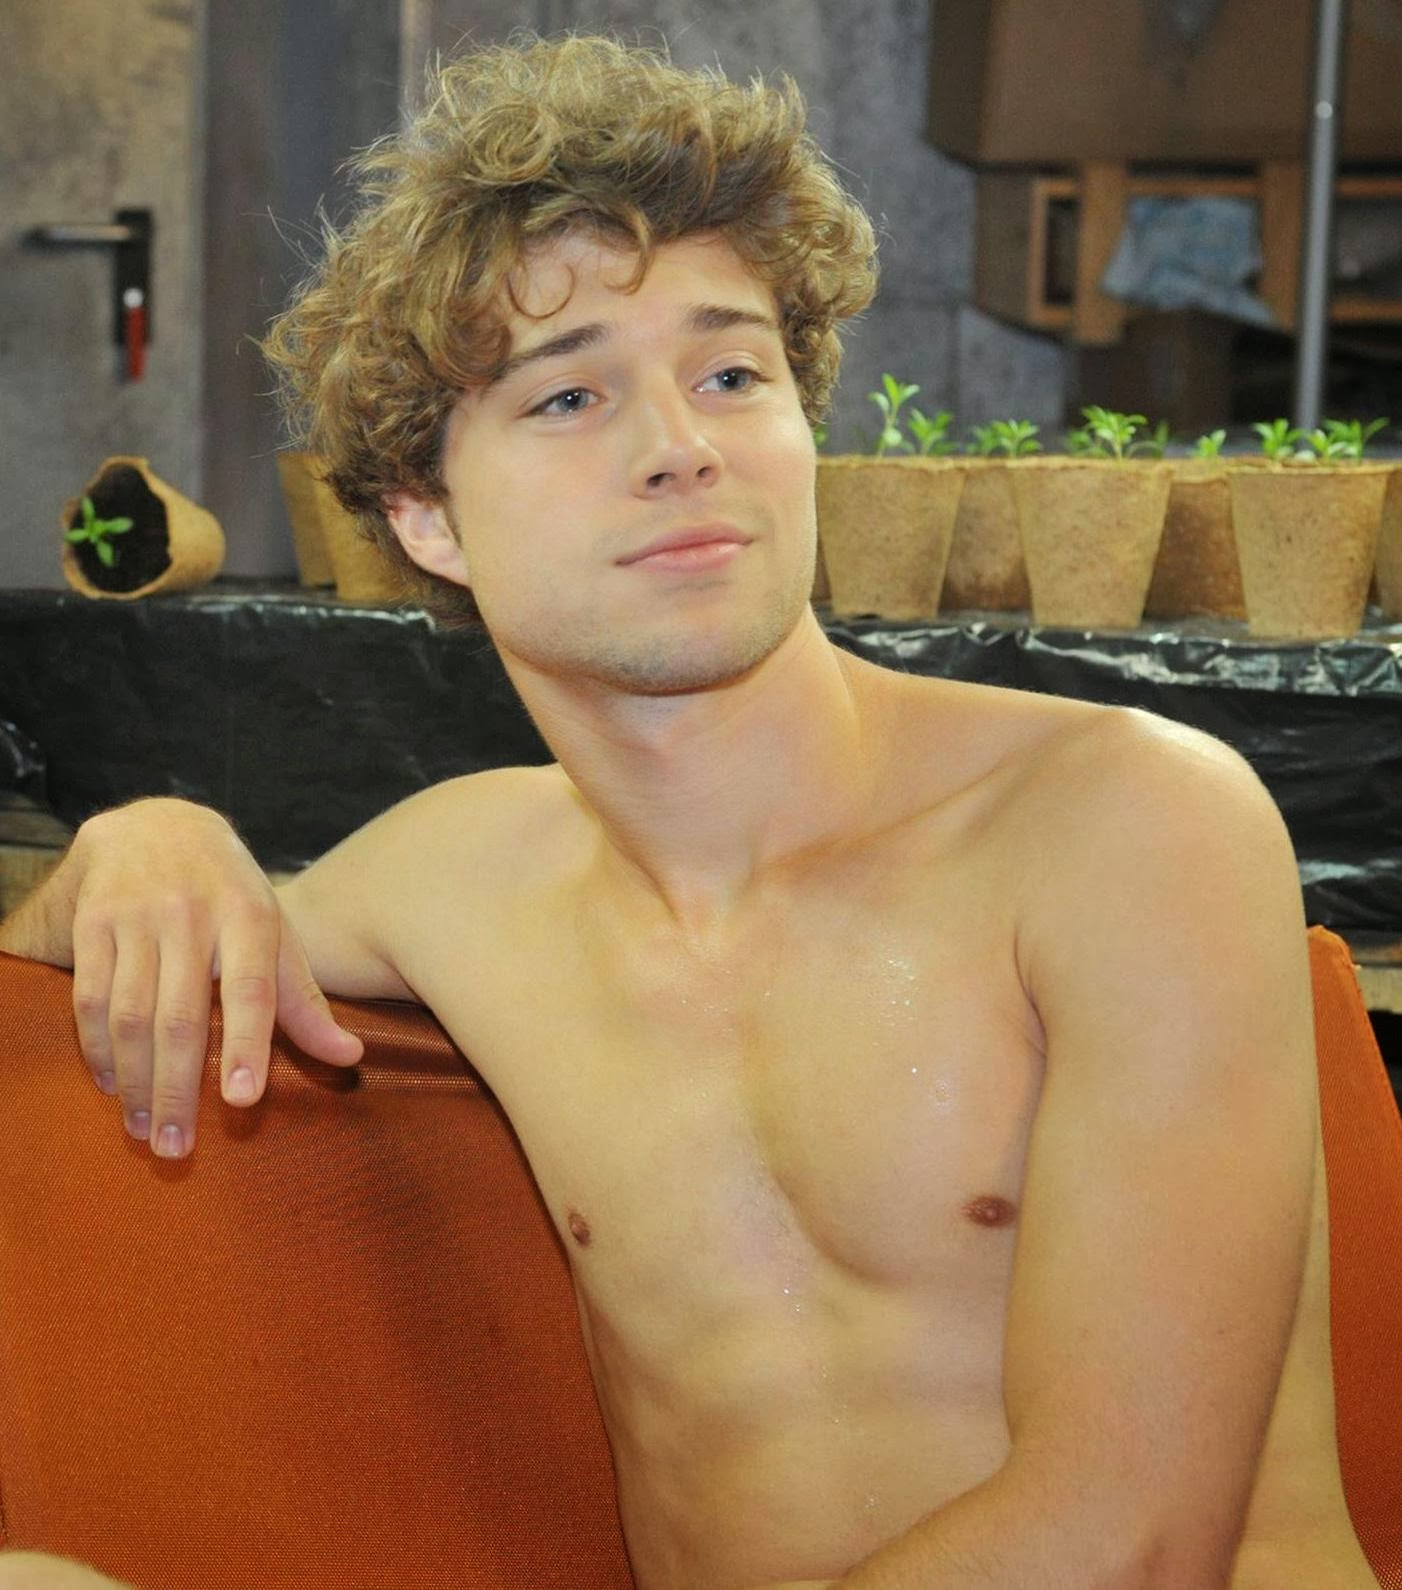 The Stars Come Out To Play: Jascha Rust - Shirtless Pics